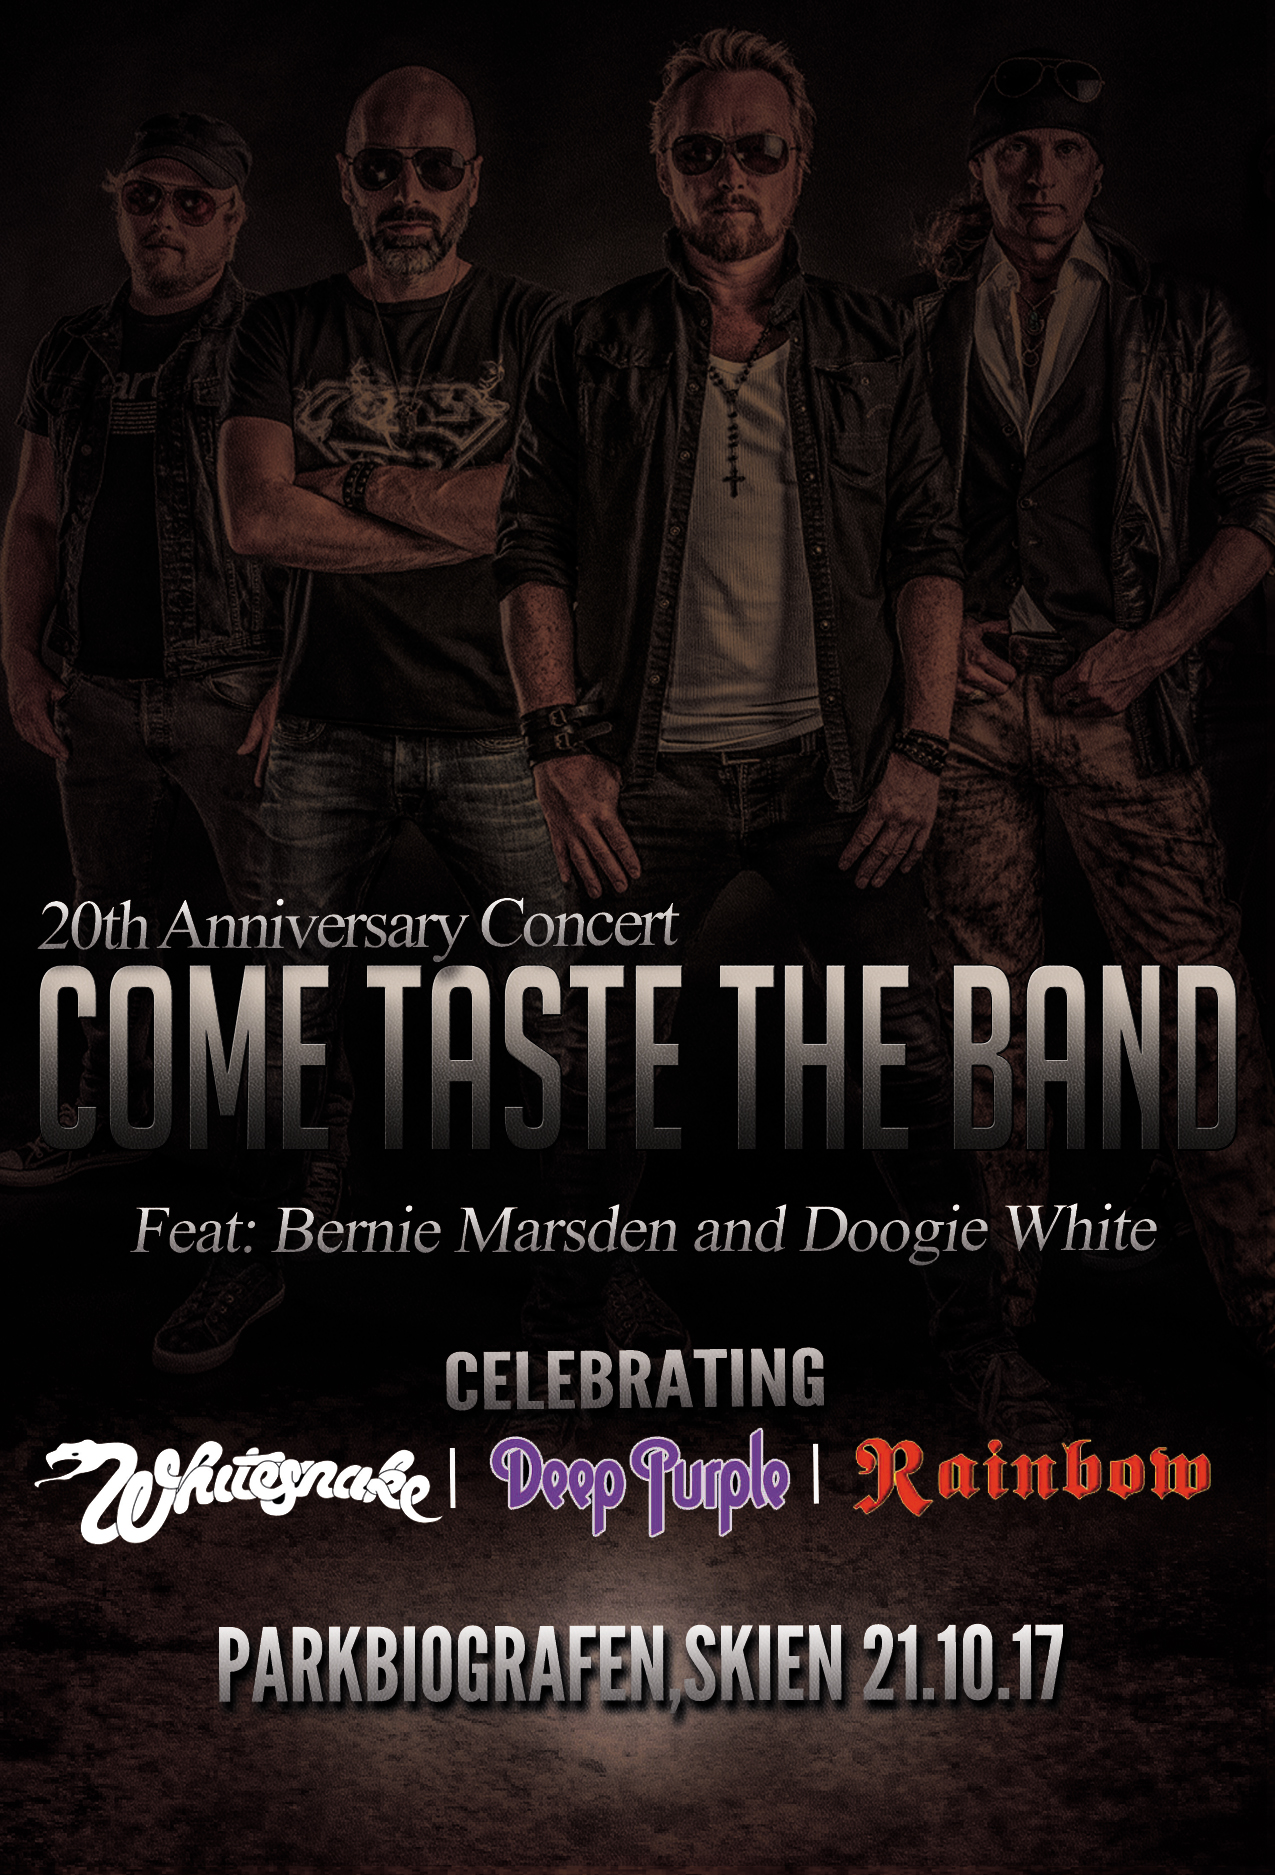 Come Taste the Band feat. Bernie Marsden & Doogie White + Anthem